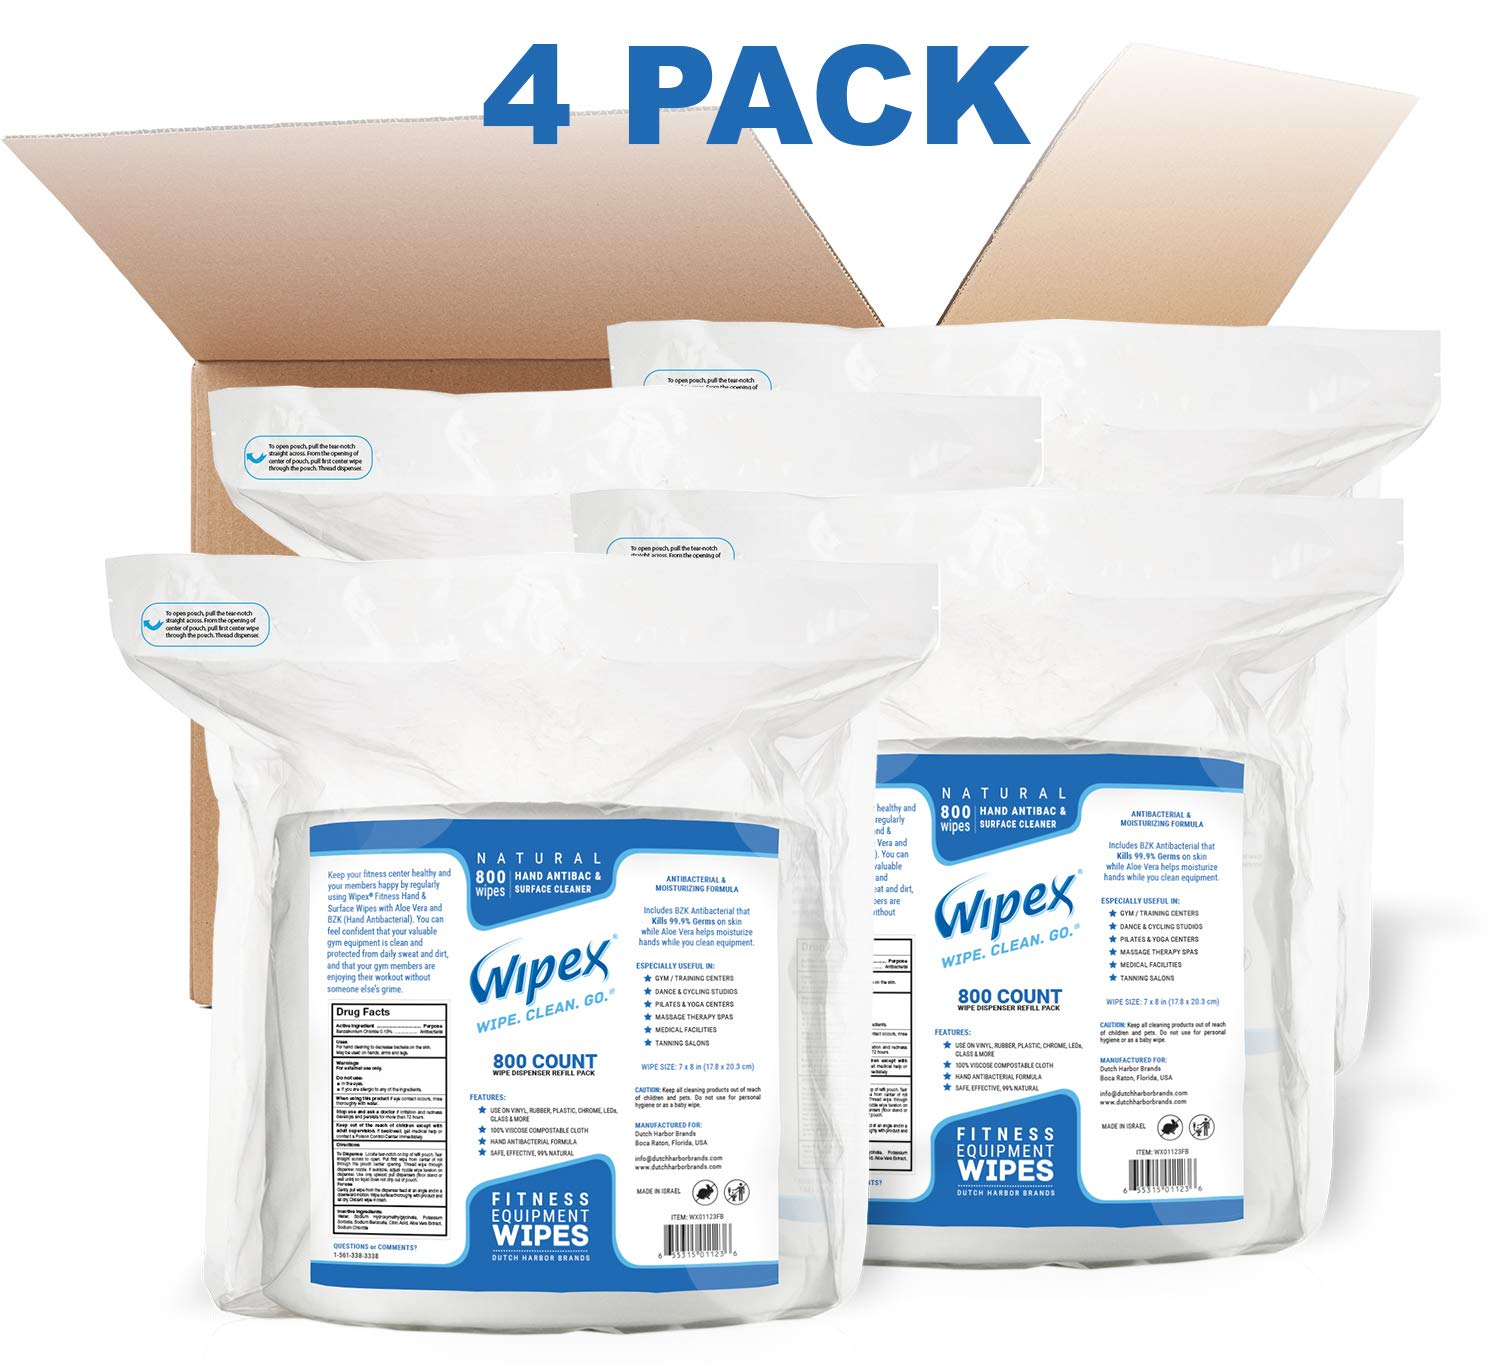 Wipex Gym Wipes 800 Refill Pack for Hand & Surfaces - 99% Natural (Incl. BZK antibacterial), 4 Pack